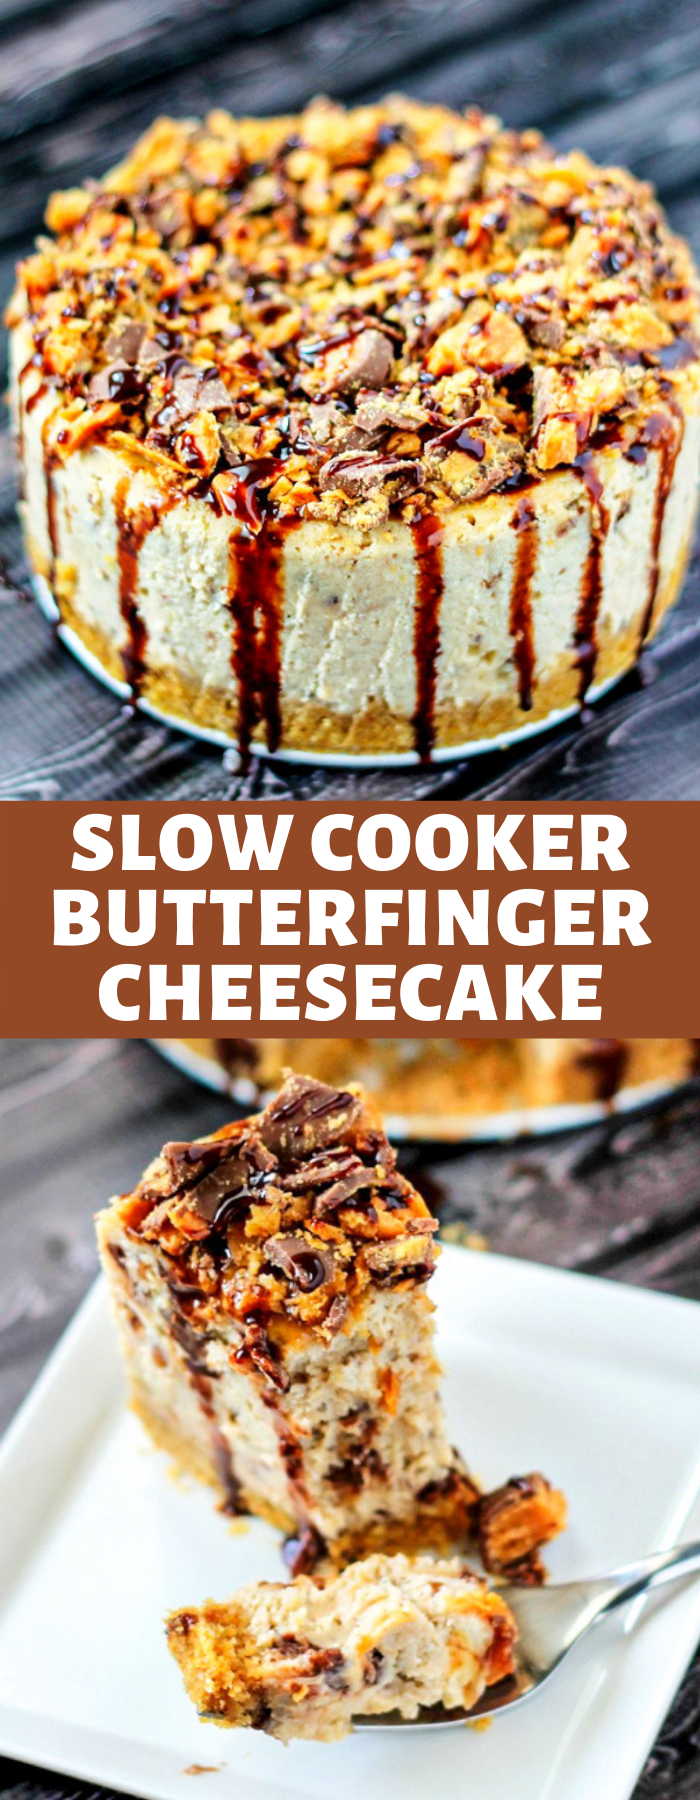 Slow Cooker Butterfinger Cheesecake is the creamiest, most delicious cheesecake you will ever try! Packed with Butterfinger candy and topped with chocolate sauce, you can't go wrong!